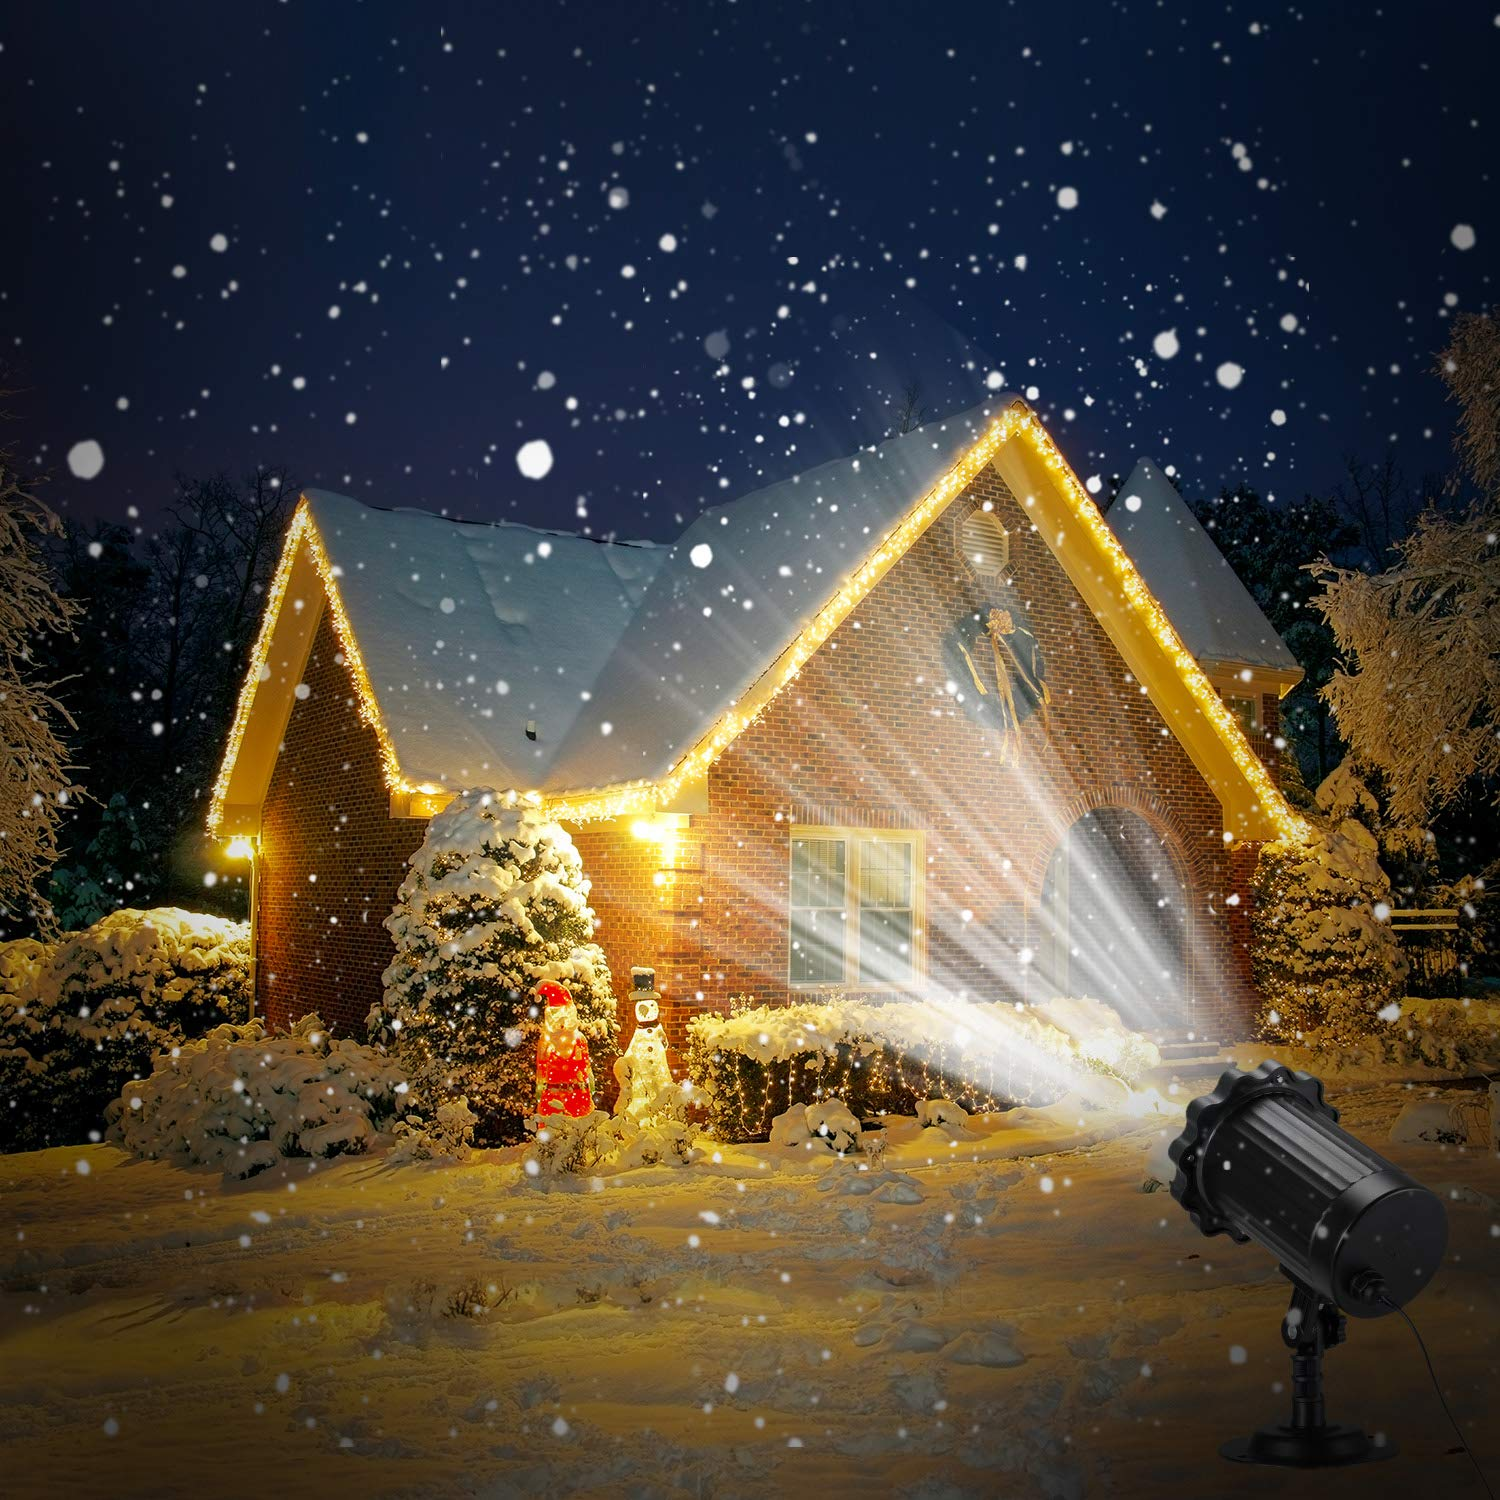 Snowfall Projector Lights, Enow Xmas Snow Falling Night Projection Lamp Waterproof Outdoor Indoor LED Snow Spotlight for Home Party Garden Halloween Holiday Landscape Decorations Remote Control